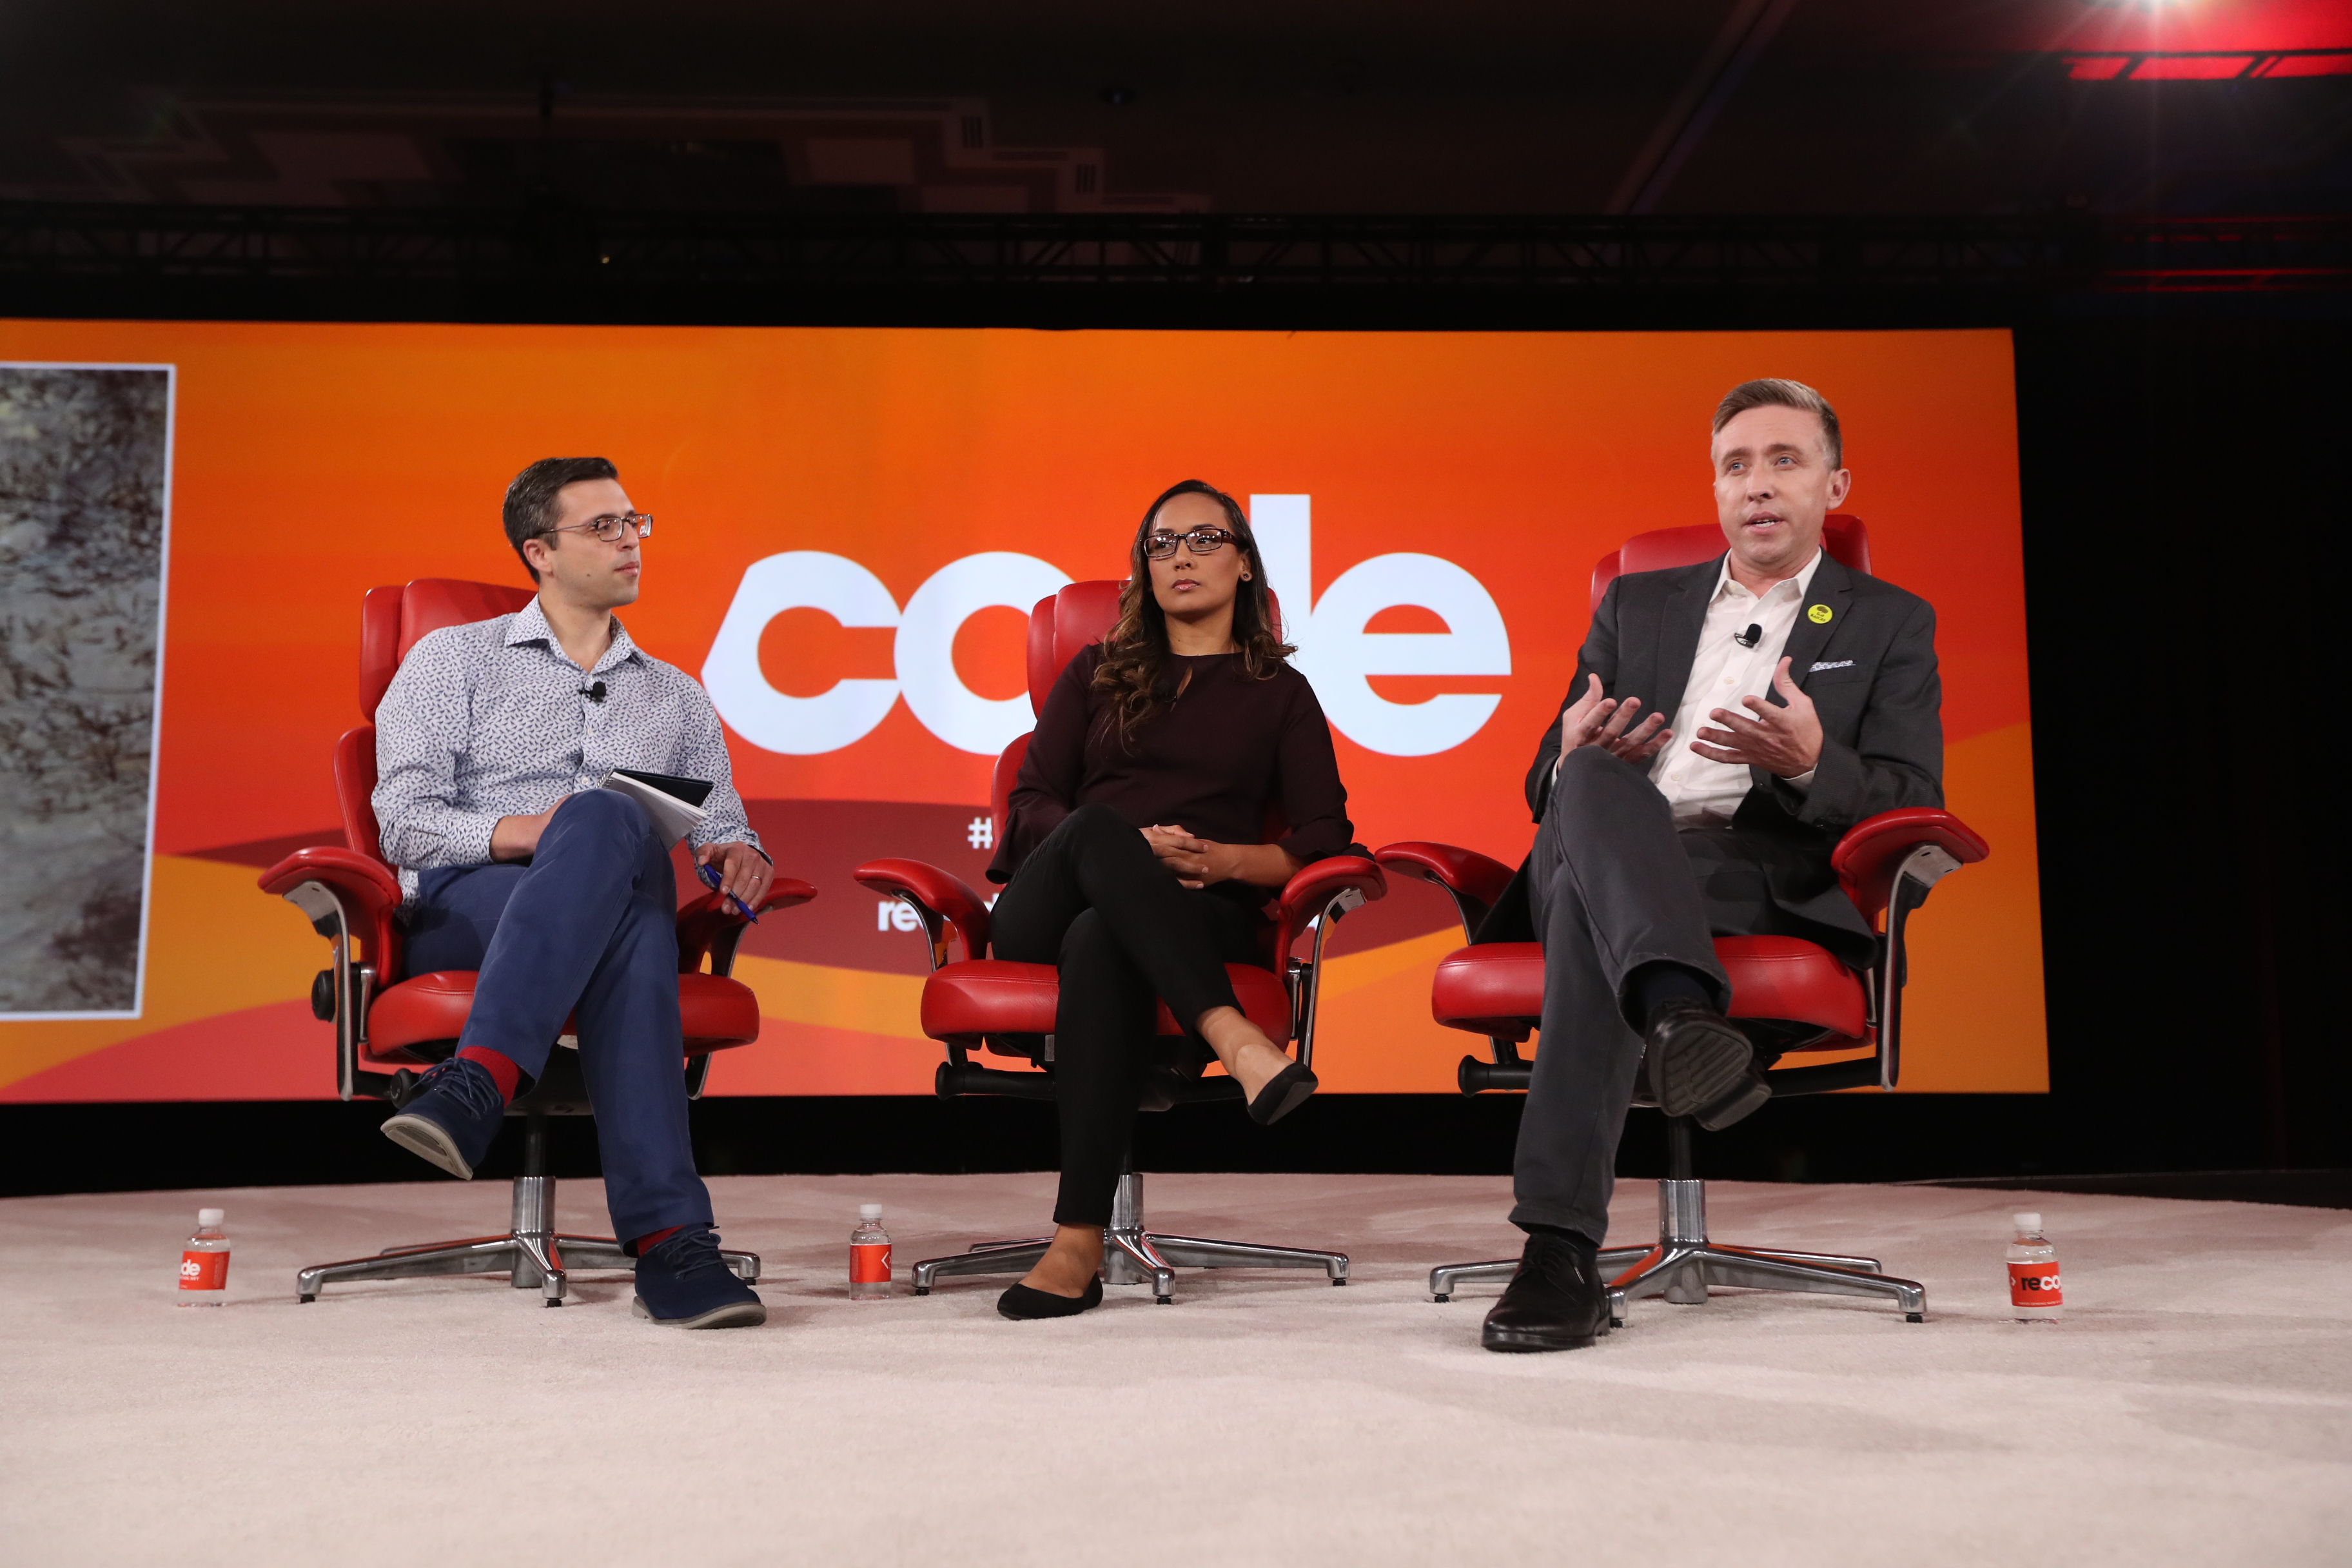 RAICES chief advocacy officer Erika Andiola and RAICES CEO Jonathan Ryan speaking onstage at Code Conference 2019.